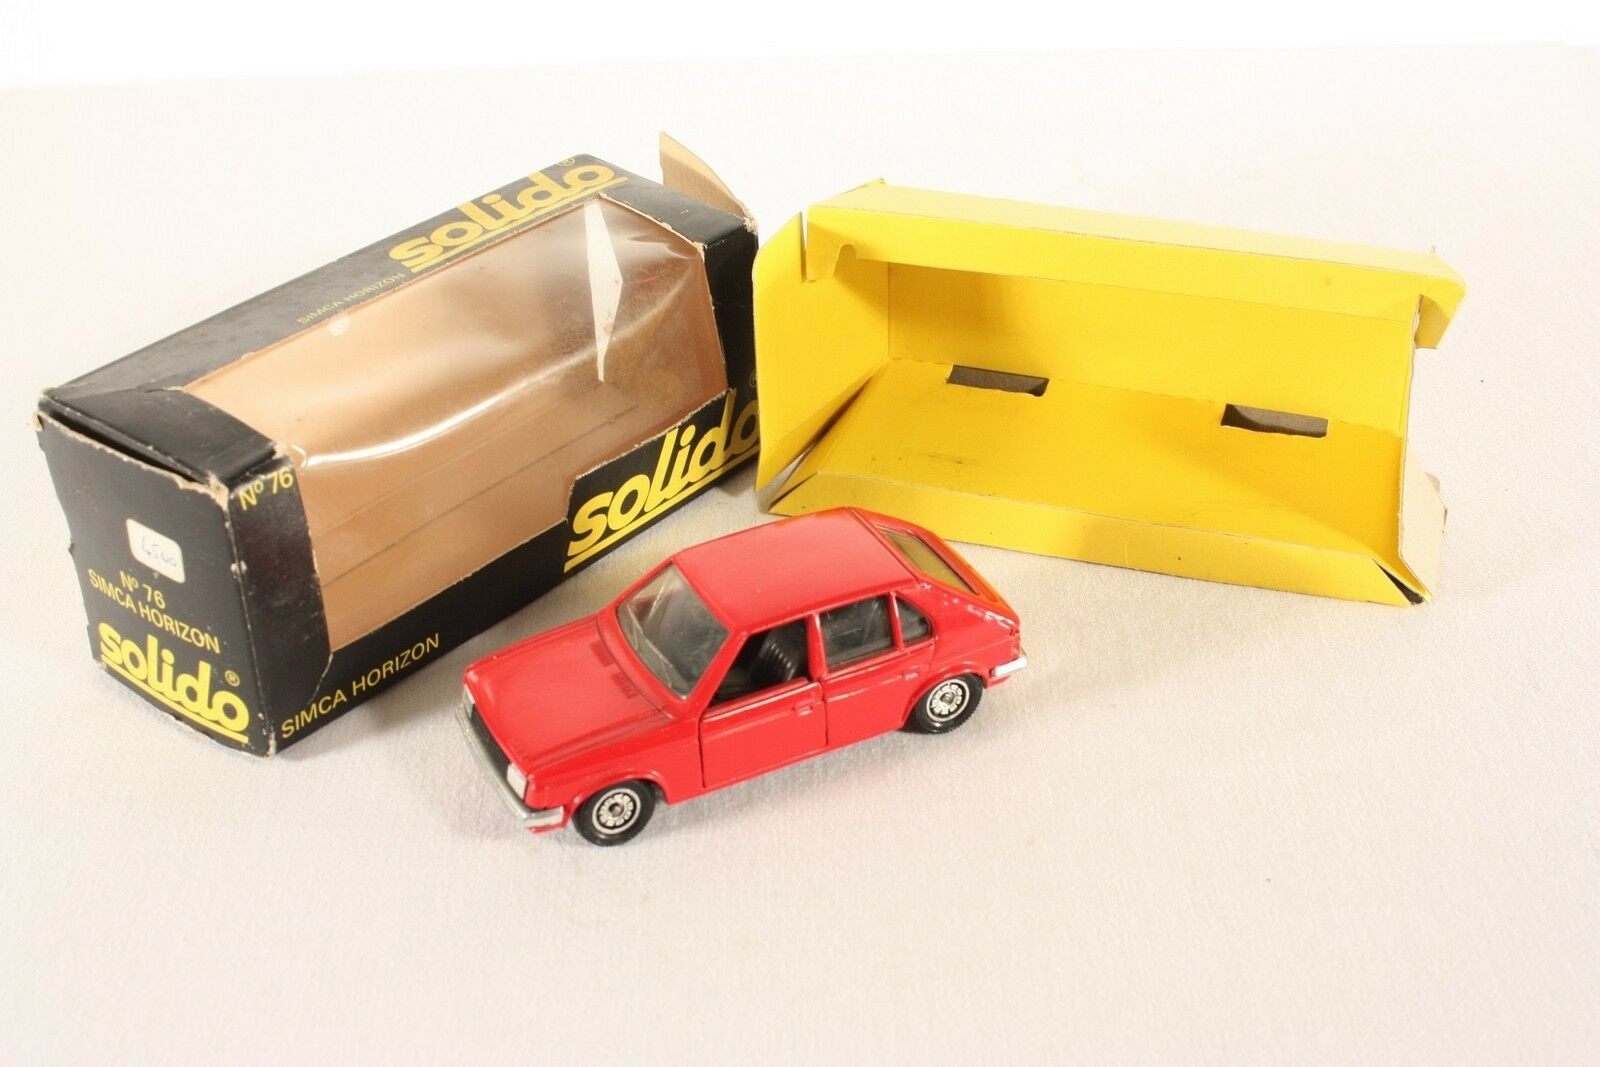 SOLIDO 76, Simca Horizon, Comme neuf in box  ab678